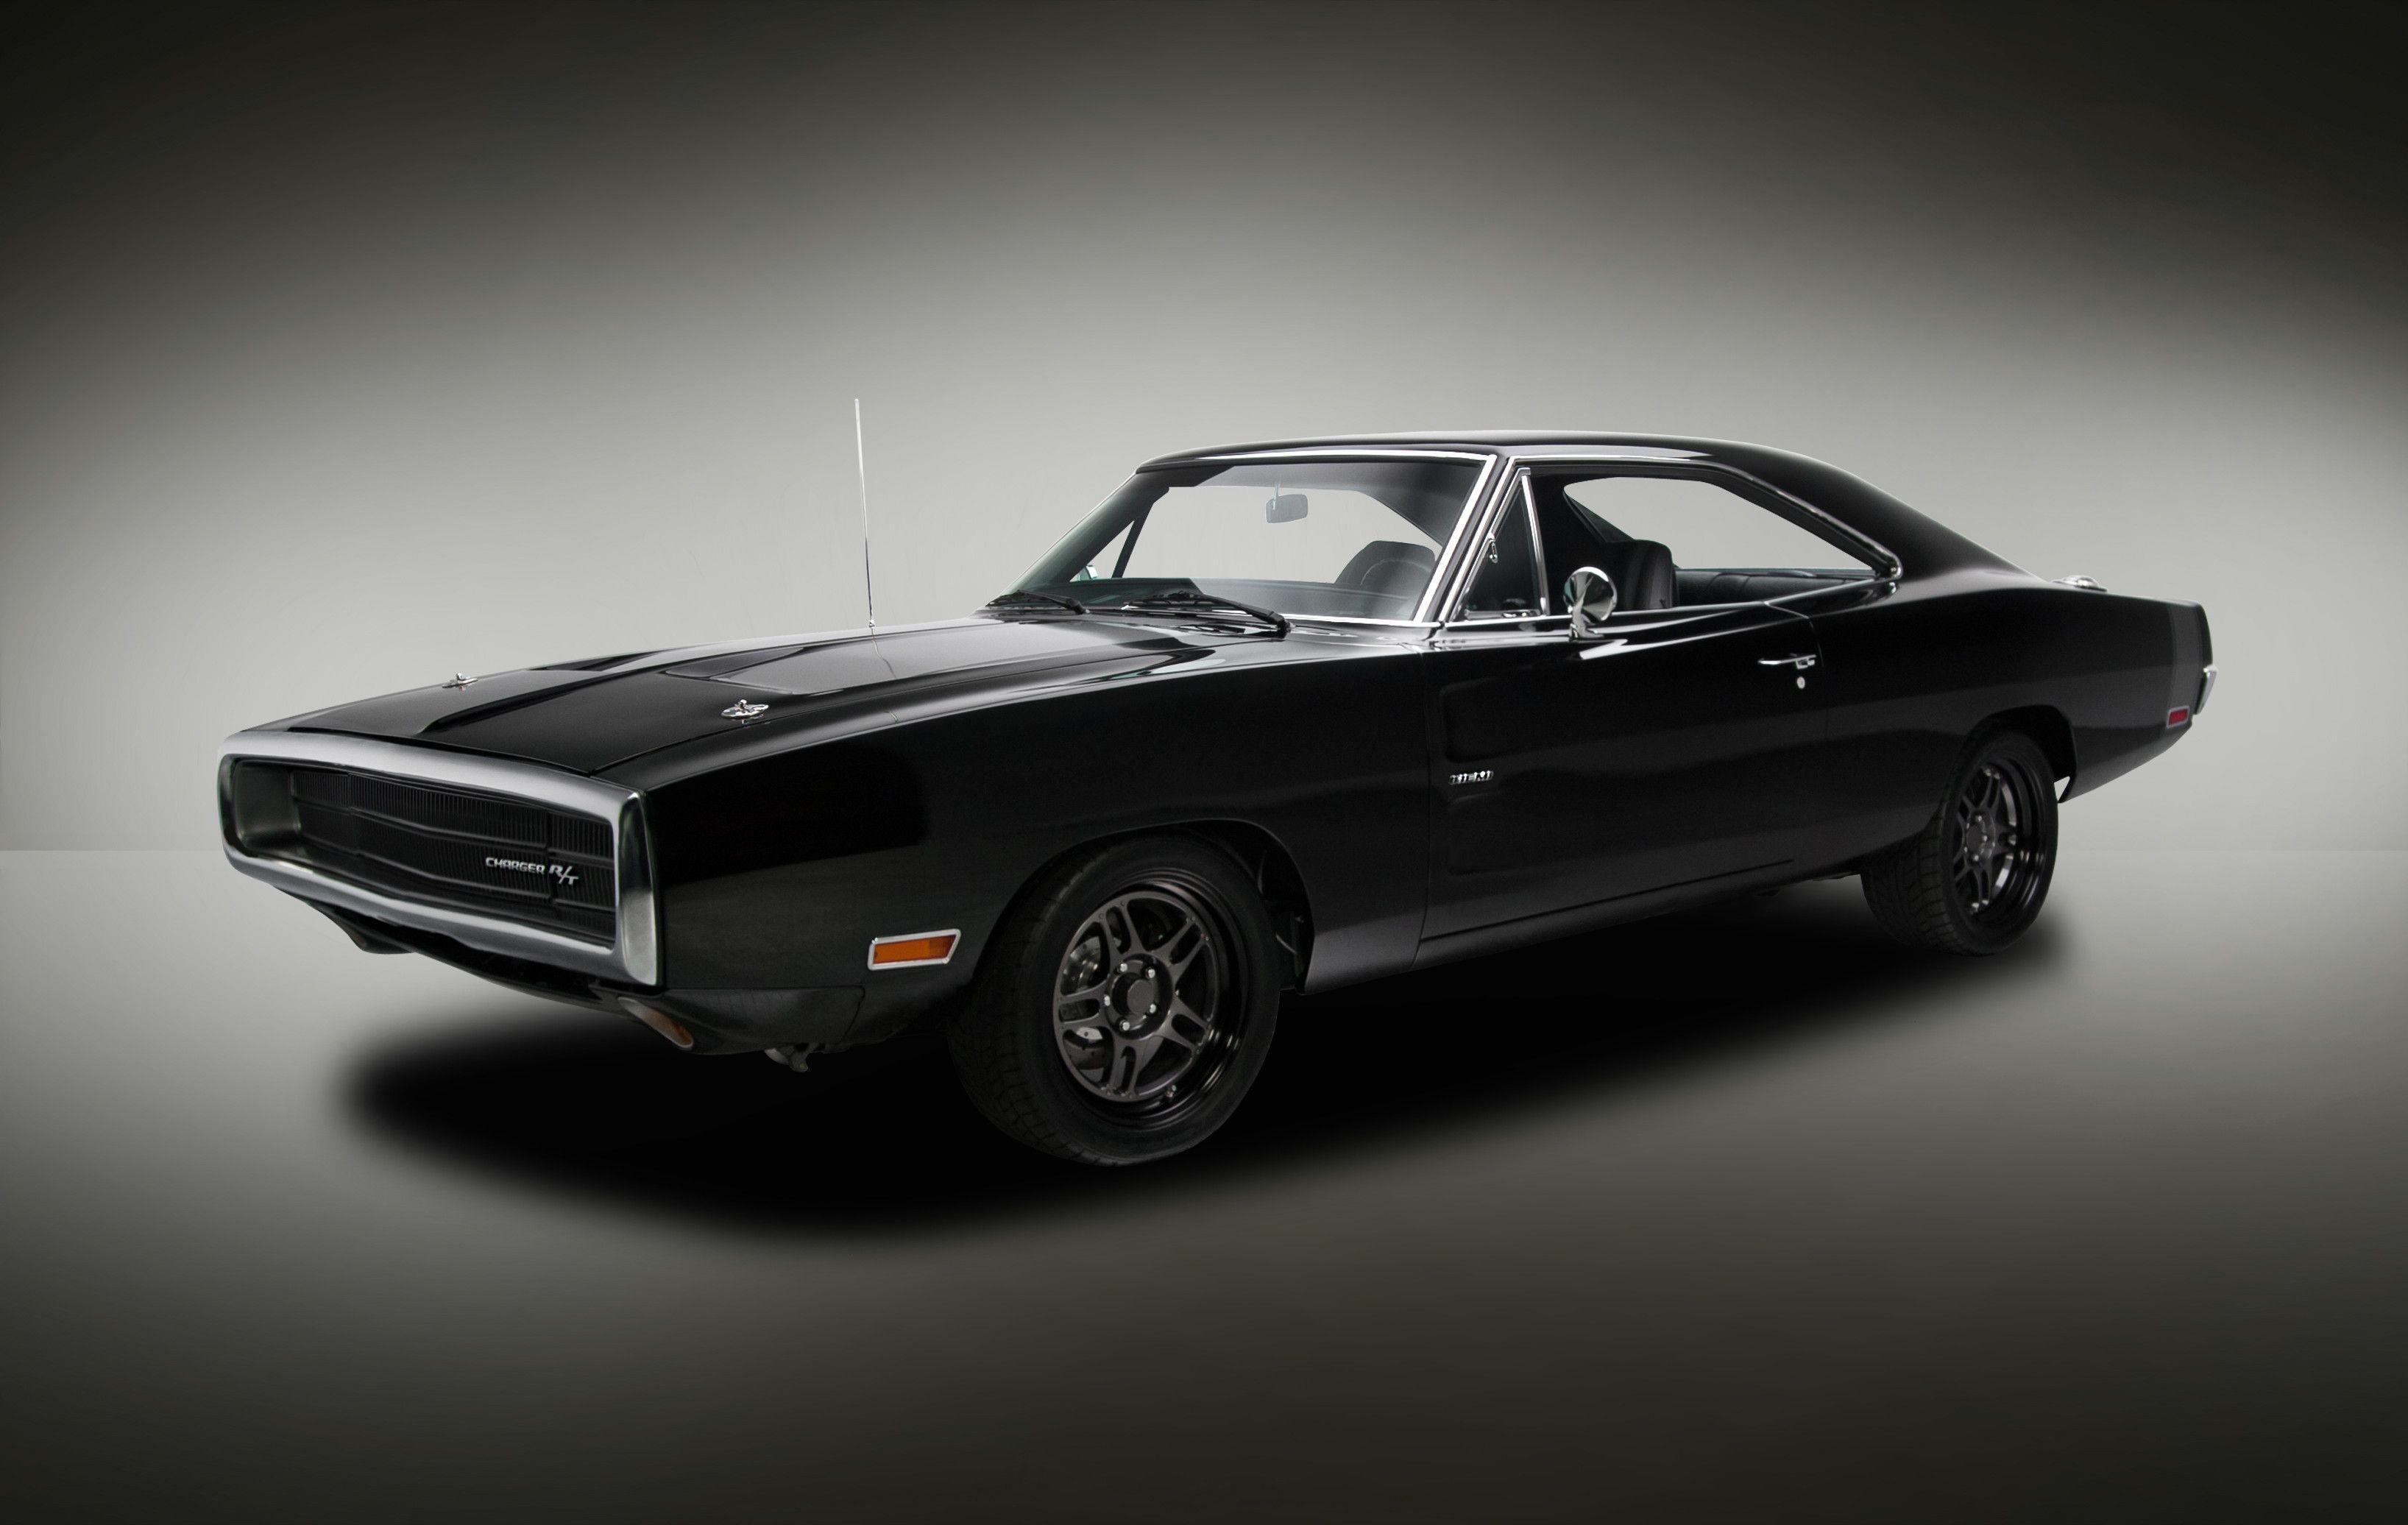 1970 Dodge Charger R/T Drawing HD Desktop